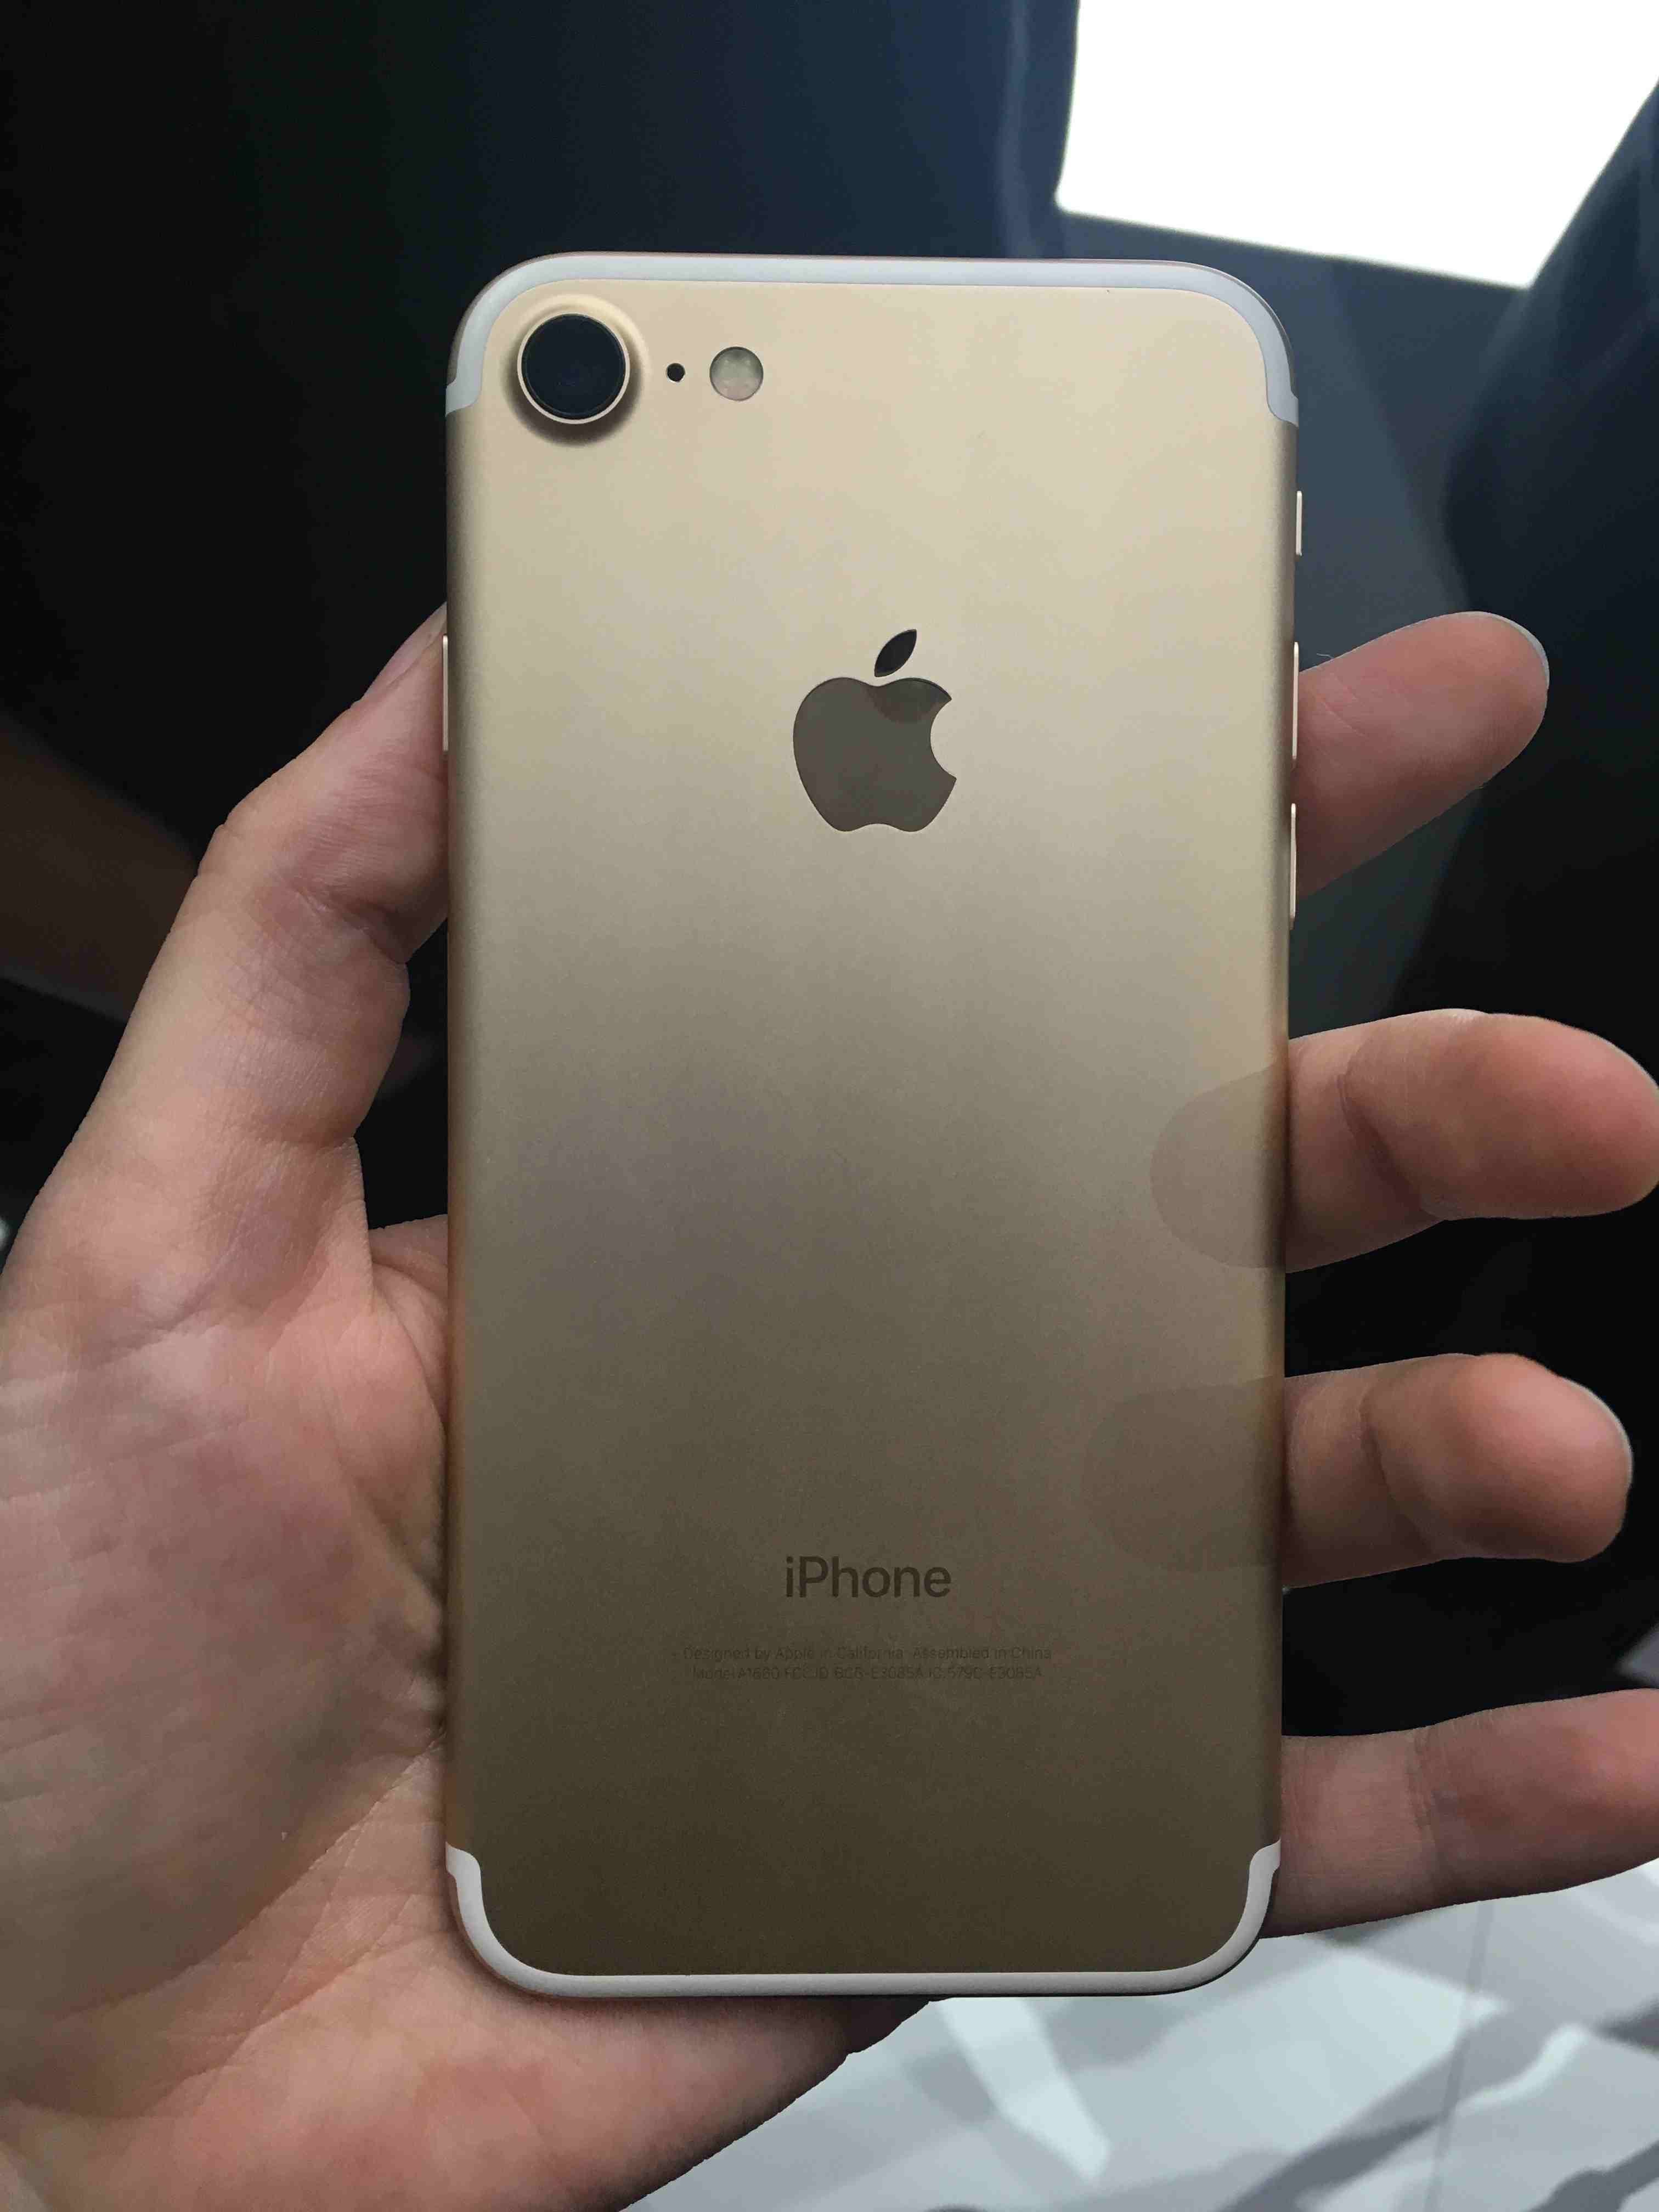 Iphone 7 128gb Gold Lte Iphone7 Cp Num 0998 3993 408 Hola I Am Selling My